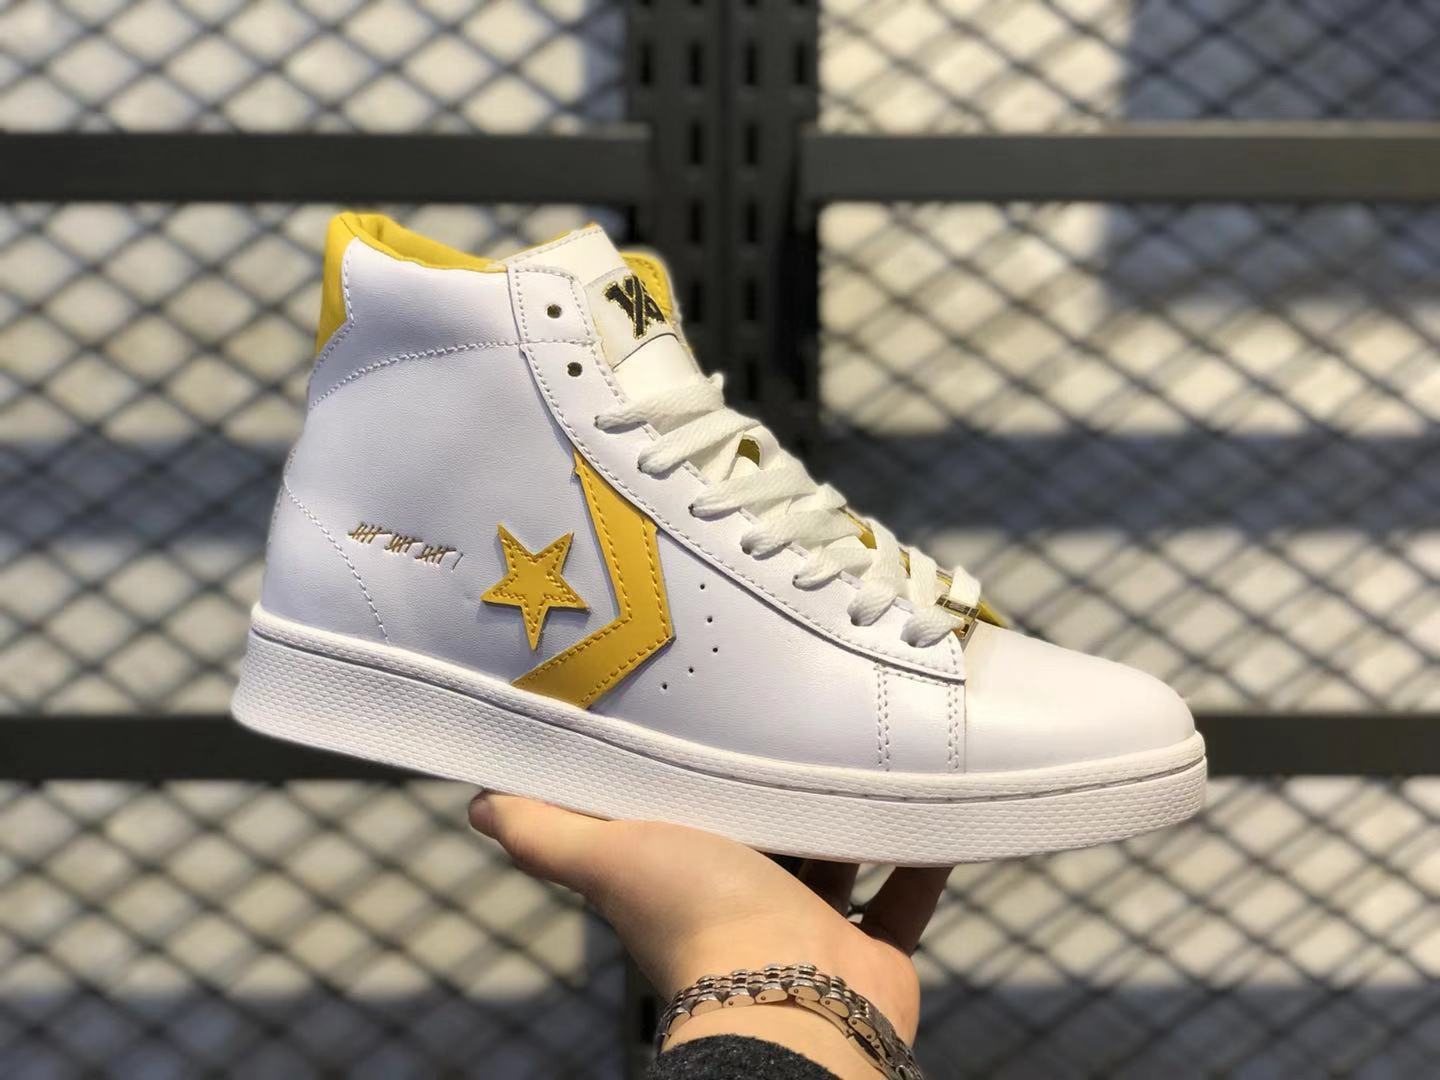 Converse Pro Leather Mid Top Shoes White Yellow 166812C | Sneakers ...